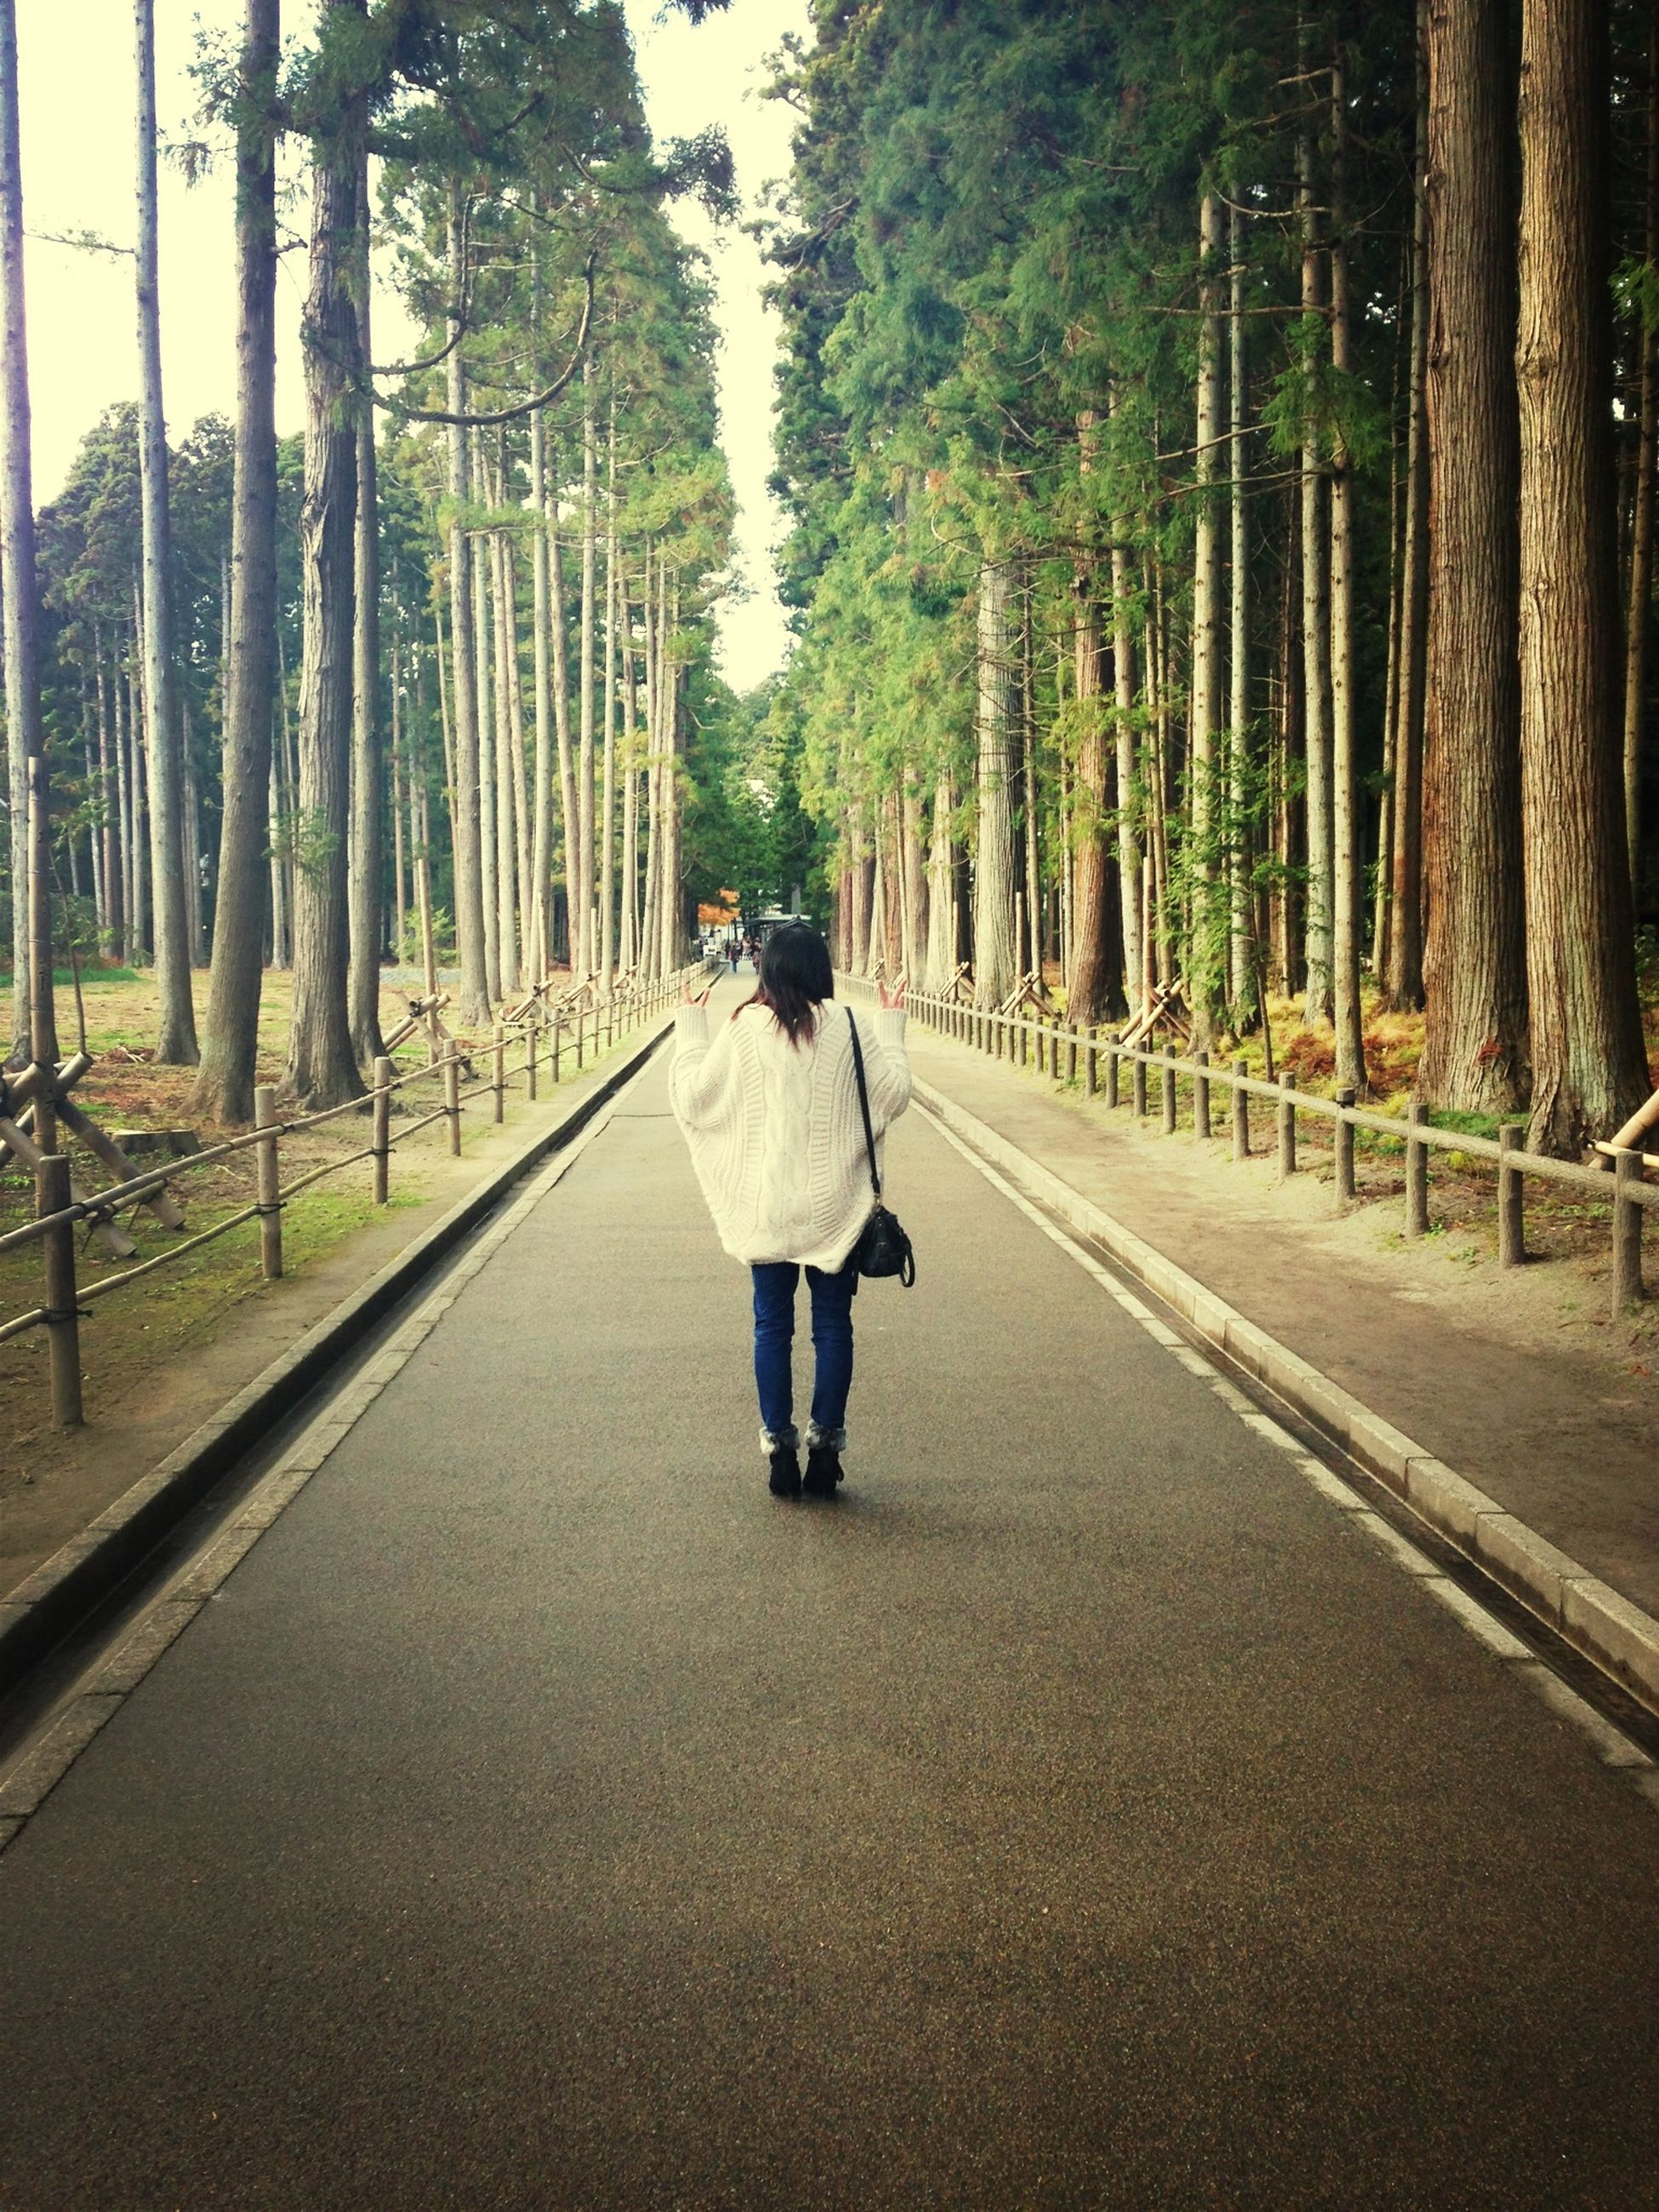 tree, the way forward, rear view, full length, walking, diminishing perspective, transportation, lifestyles, vanishing point, road, leisure activity, casual clothing, treelined, forest, men, tree trunk, day, person